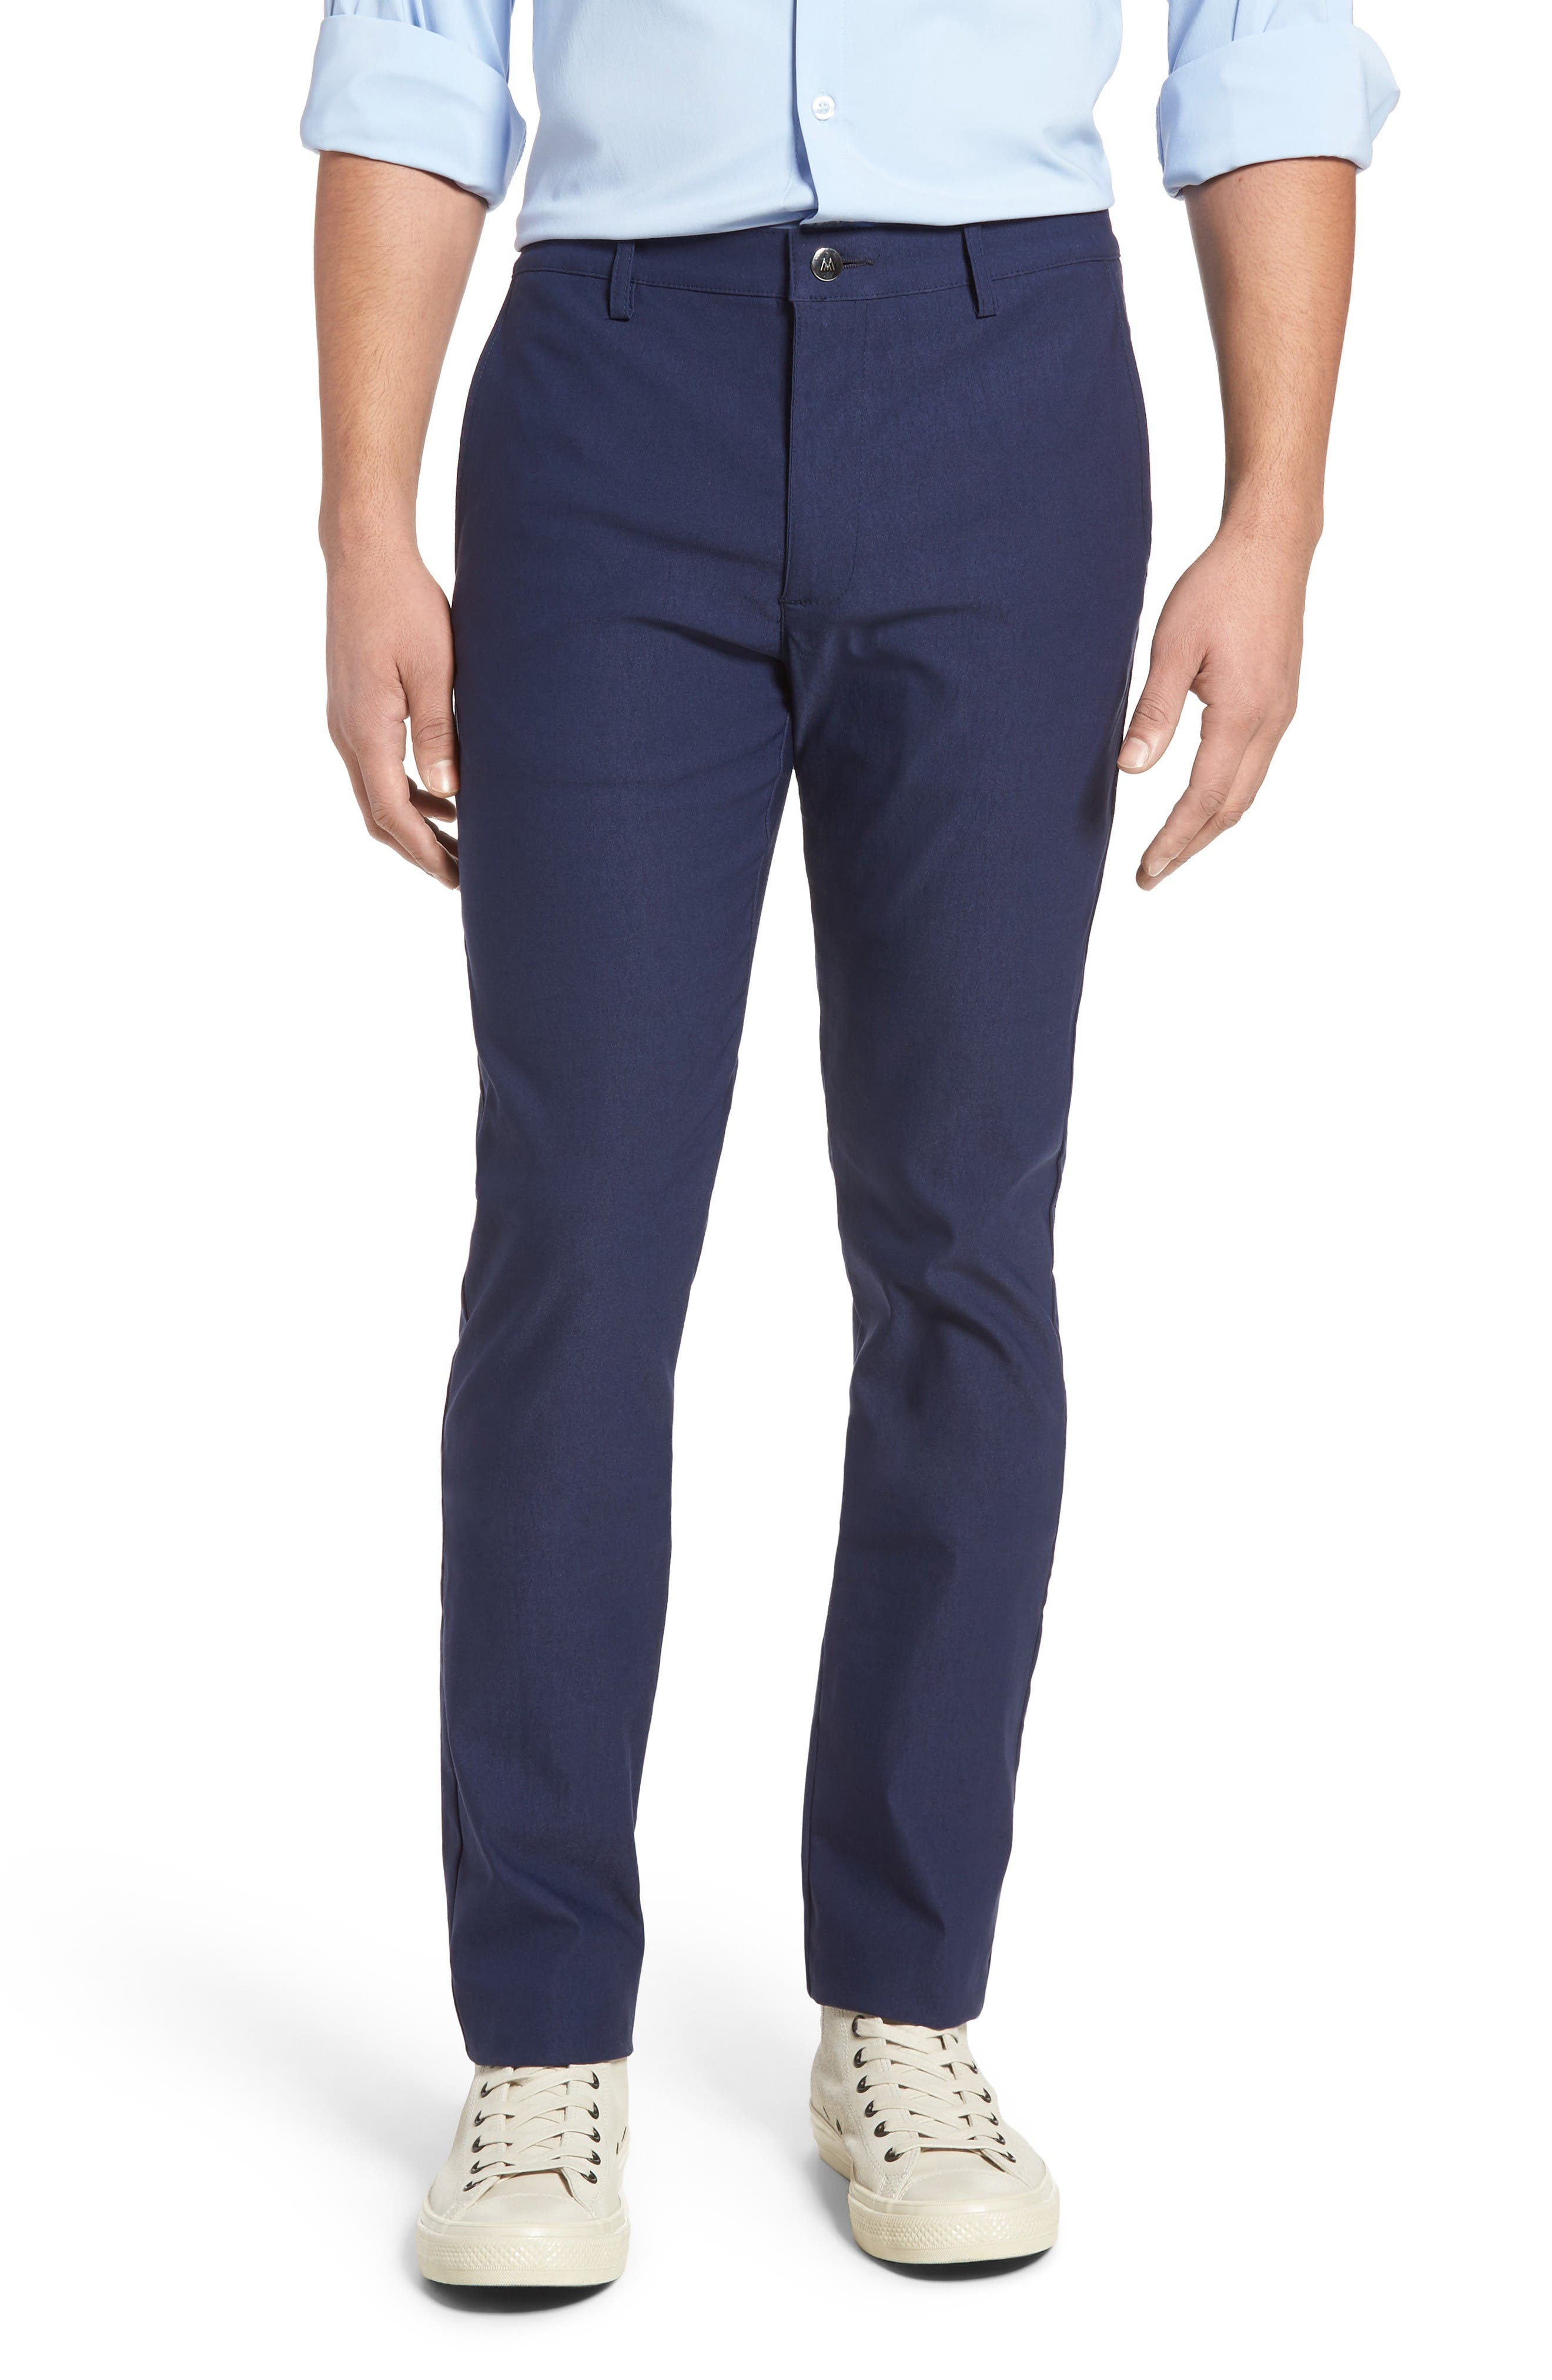 President Trim Fit Performance Chinos,                             Main thumbnail 1, color,                             Navy